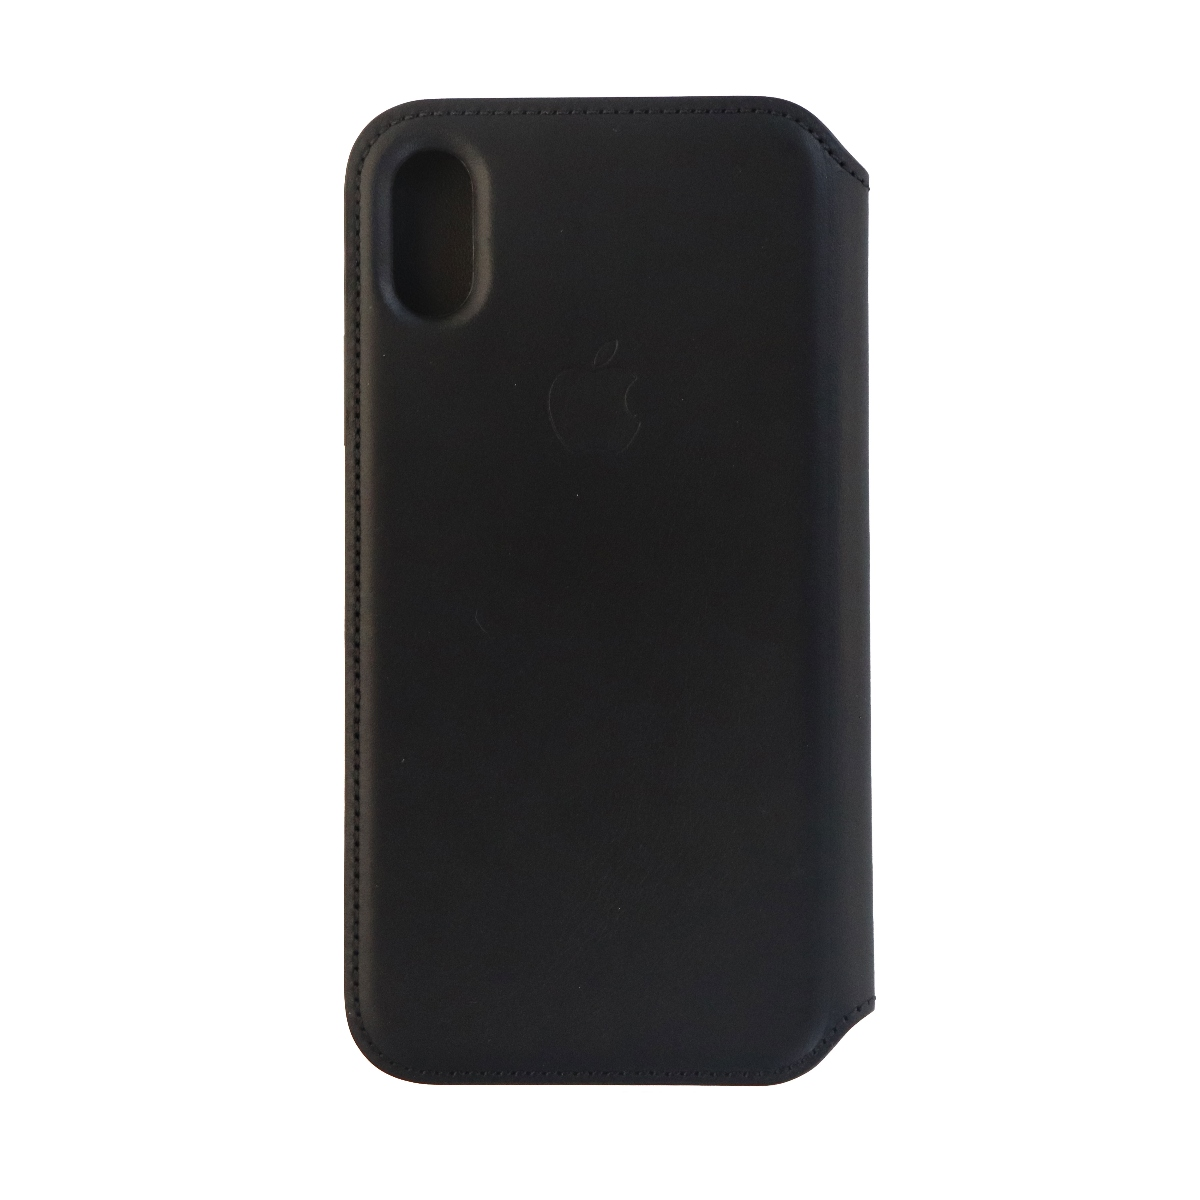 Apple Leather Folio Case Cover for Apple iPhone X 10 - Black Leather